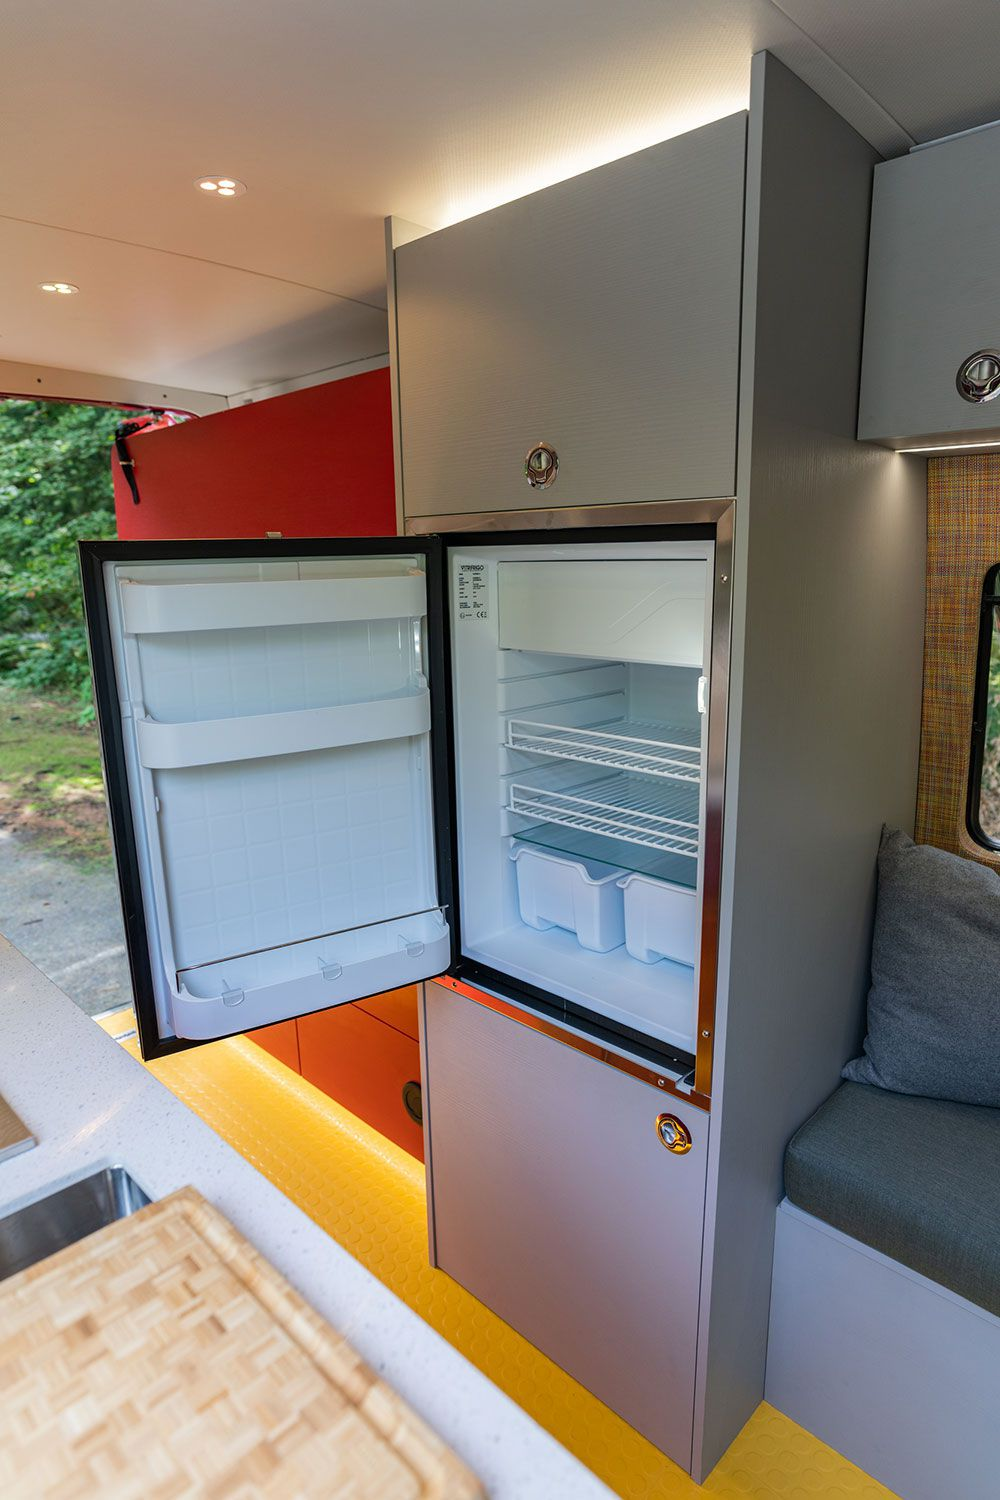 A gray cabinet in the camper van features a large fridge at standing height.